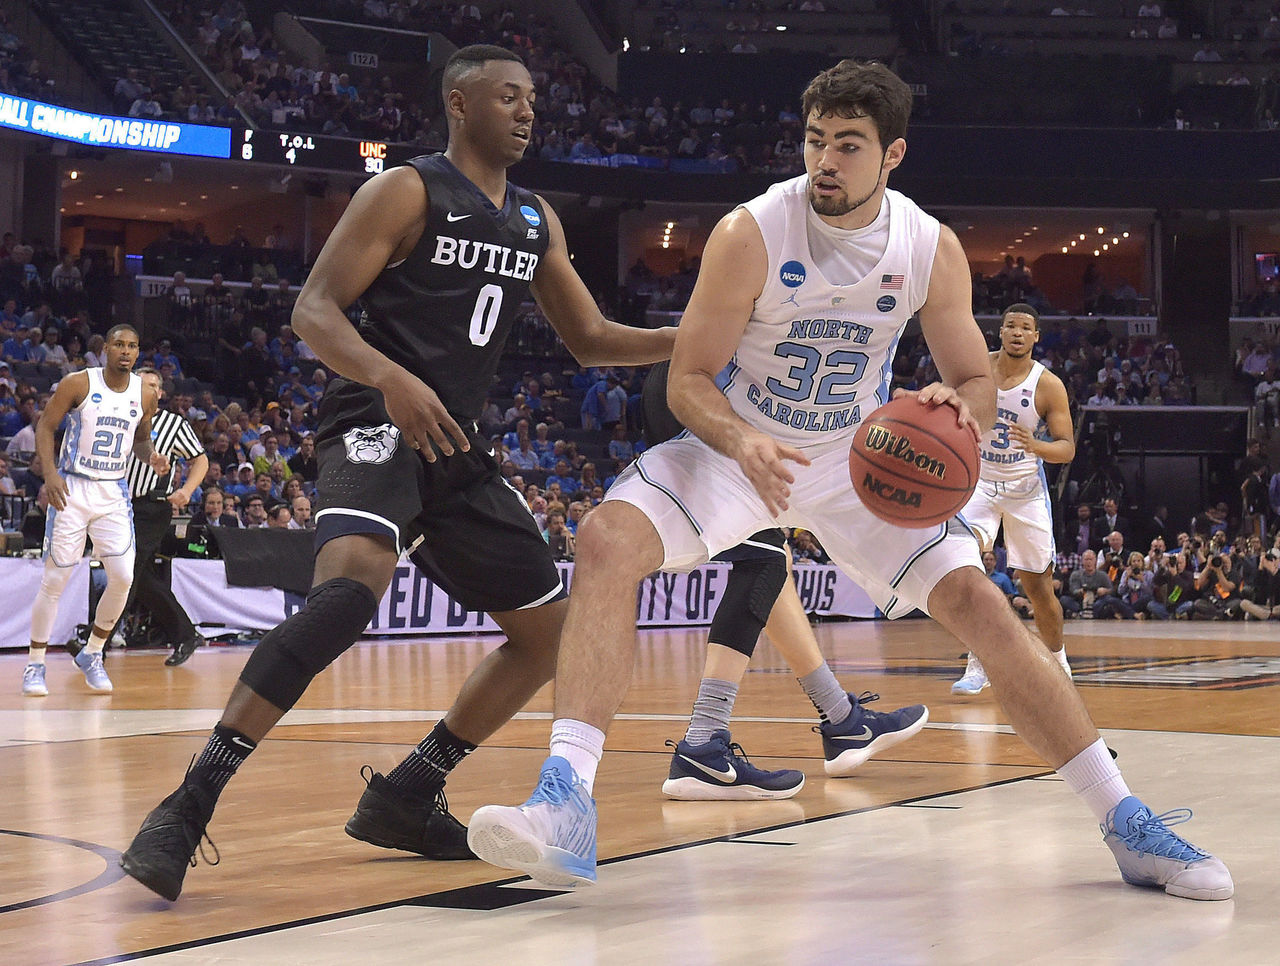 Cropped 2017 03 24t235142z 476087465 nocid rtrmadp 3 ncaa basketball ncaa tournament south regional north carolina vs butler